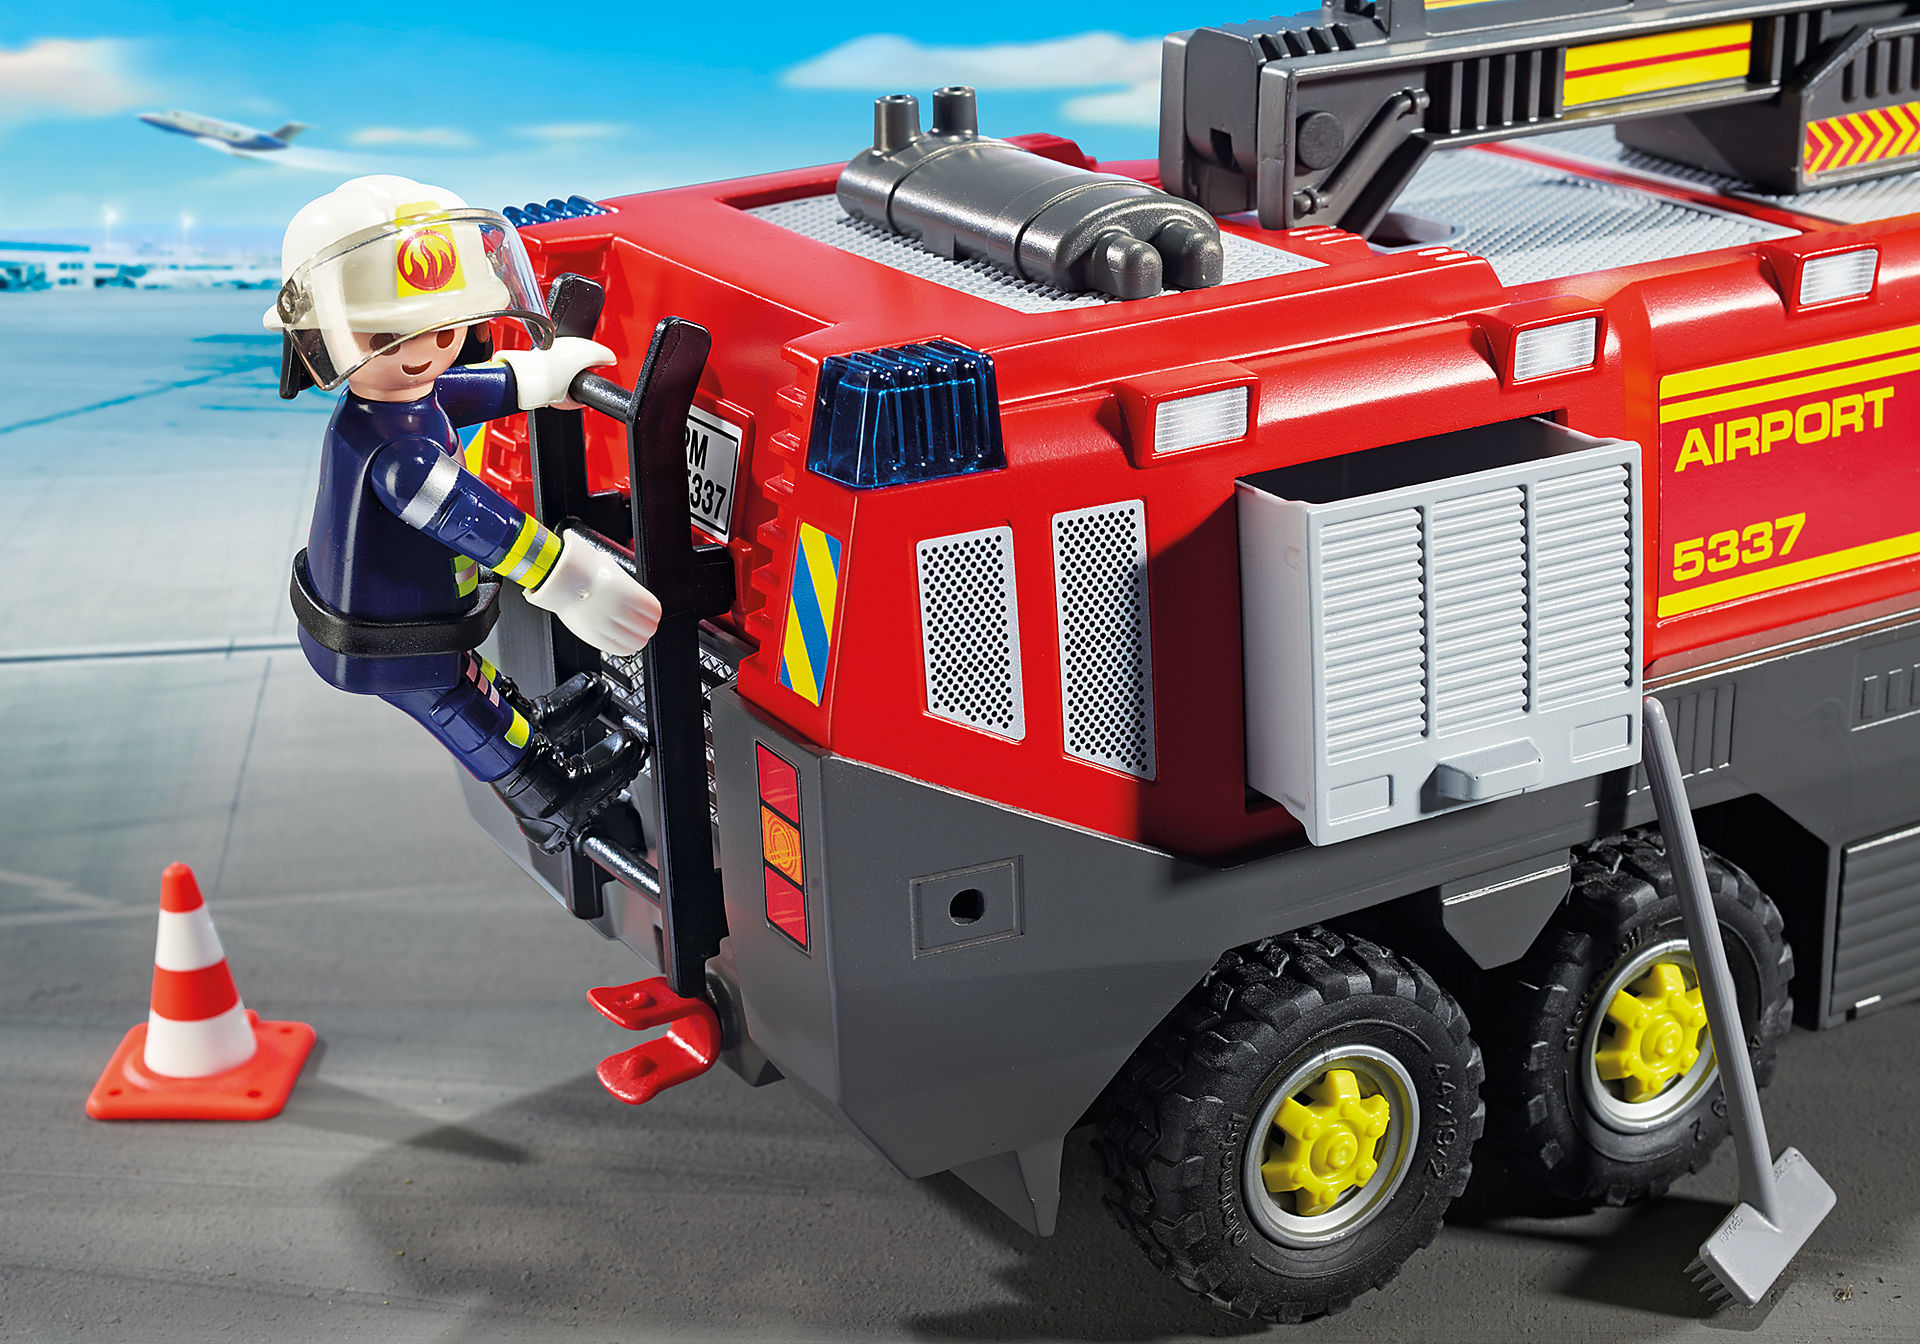 Airport Fire Engine With Lights And Sound 5337